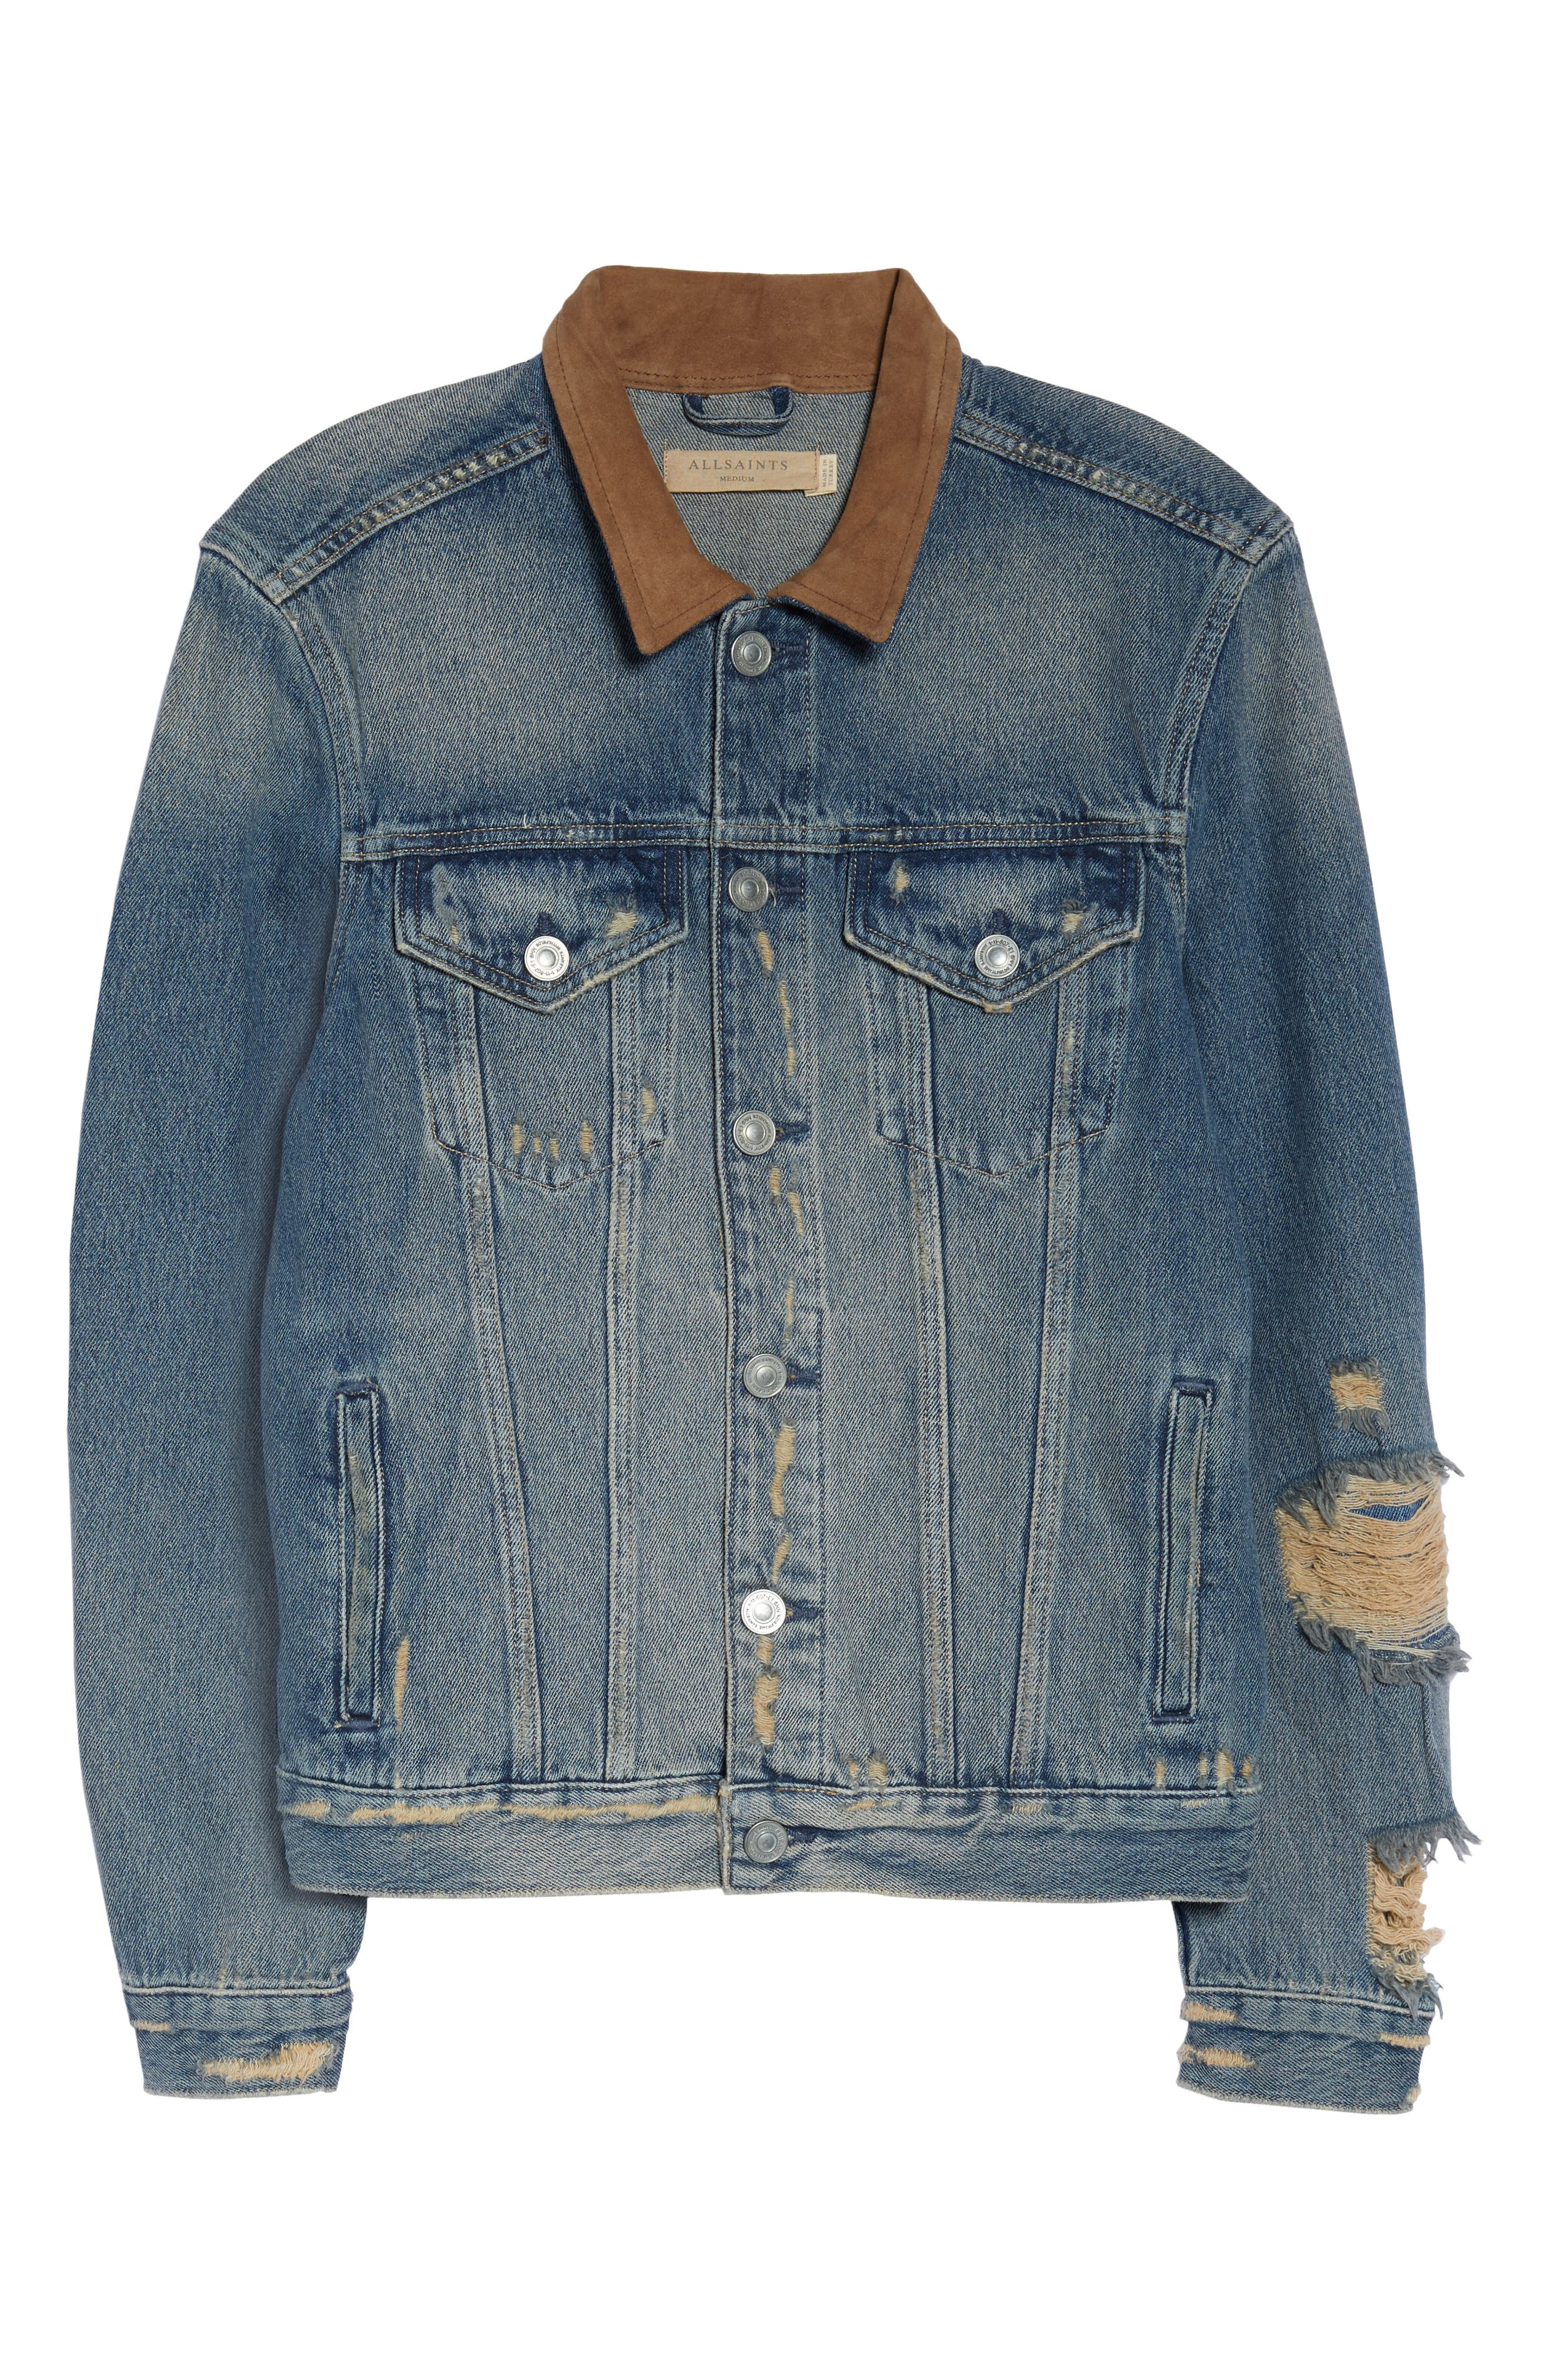 ALLSAINTS, Iren Slim Fit Denim Jacket with Leather Collar, Alternate thumbnail 5, color, MID INDIGO BLUE